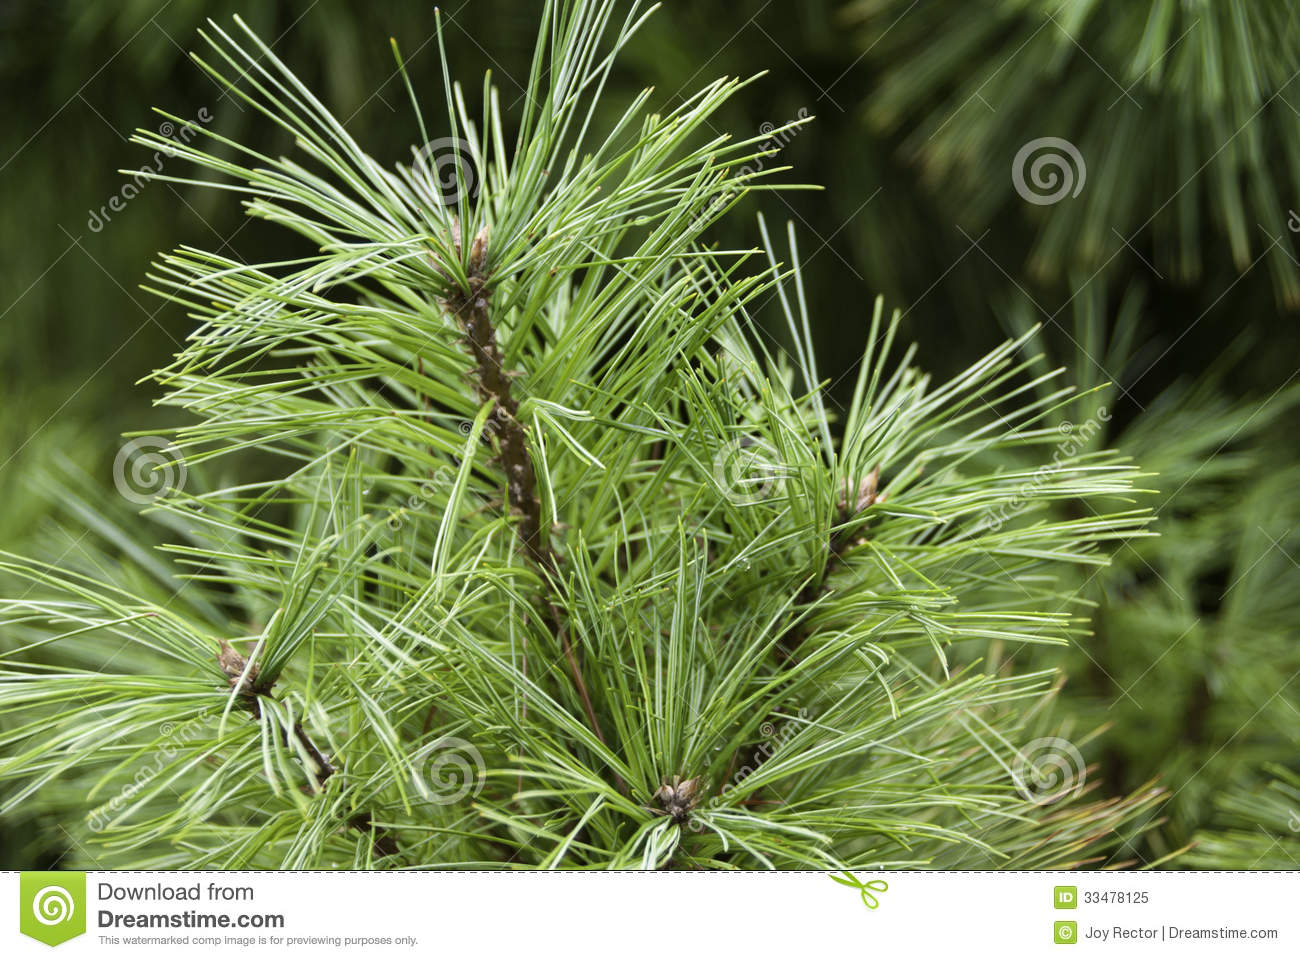 Evergreen Branch Royalty Free Stock Photo - Image: 33478125 Evergreen Branch